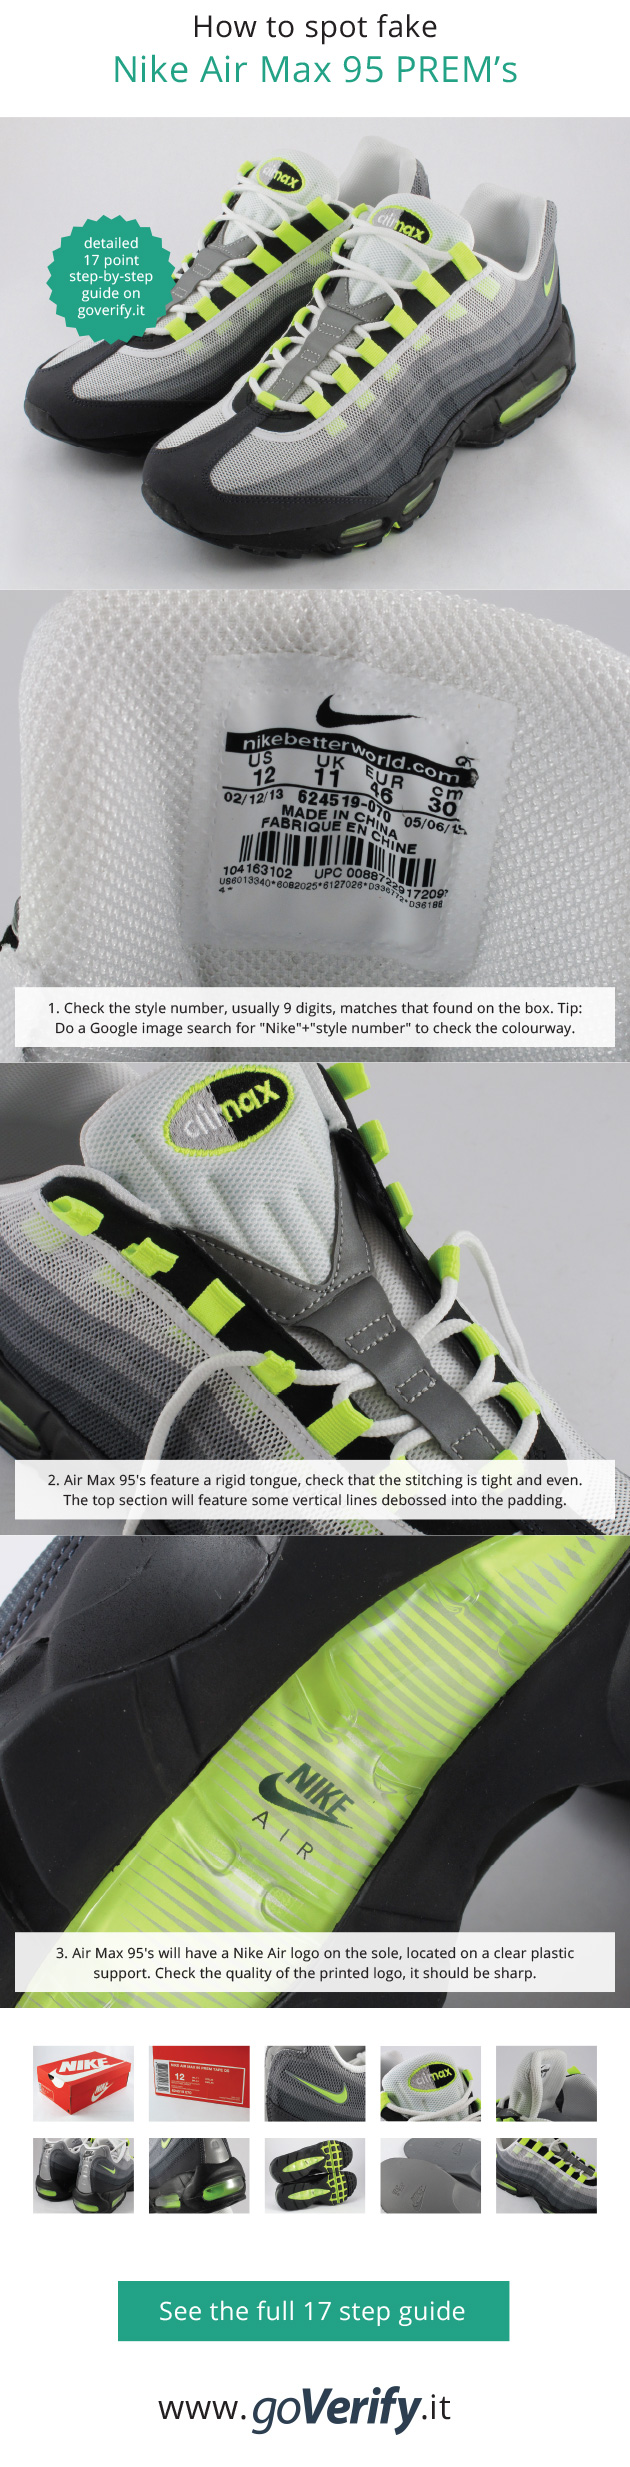 air max 95 immitation